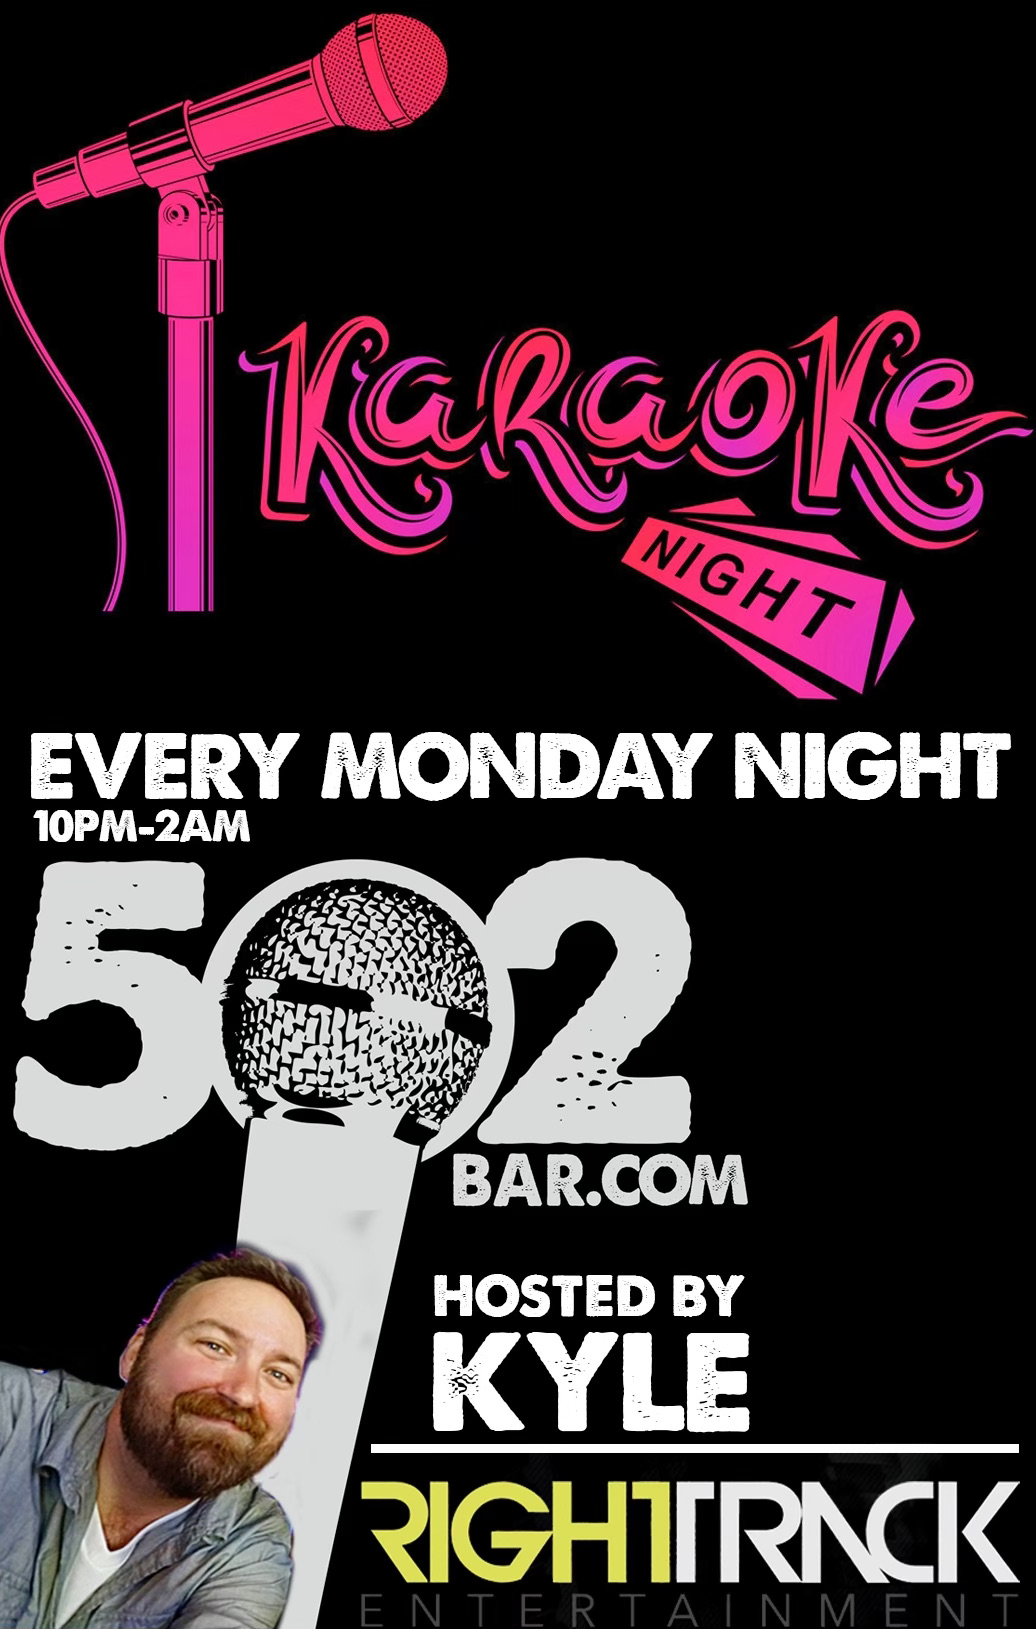 Monday Night Karaoke 502 Bar hosted by Right Track Entertainment